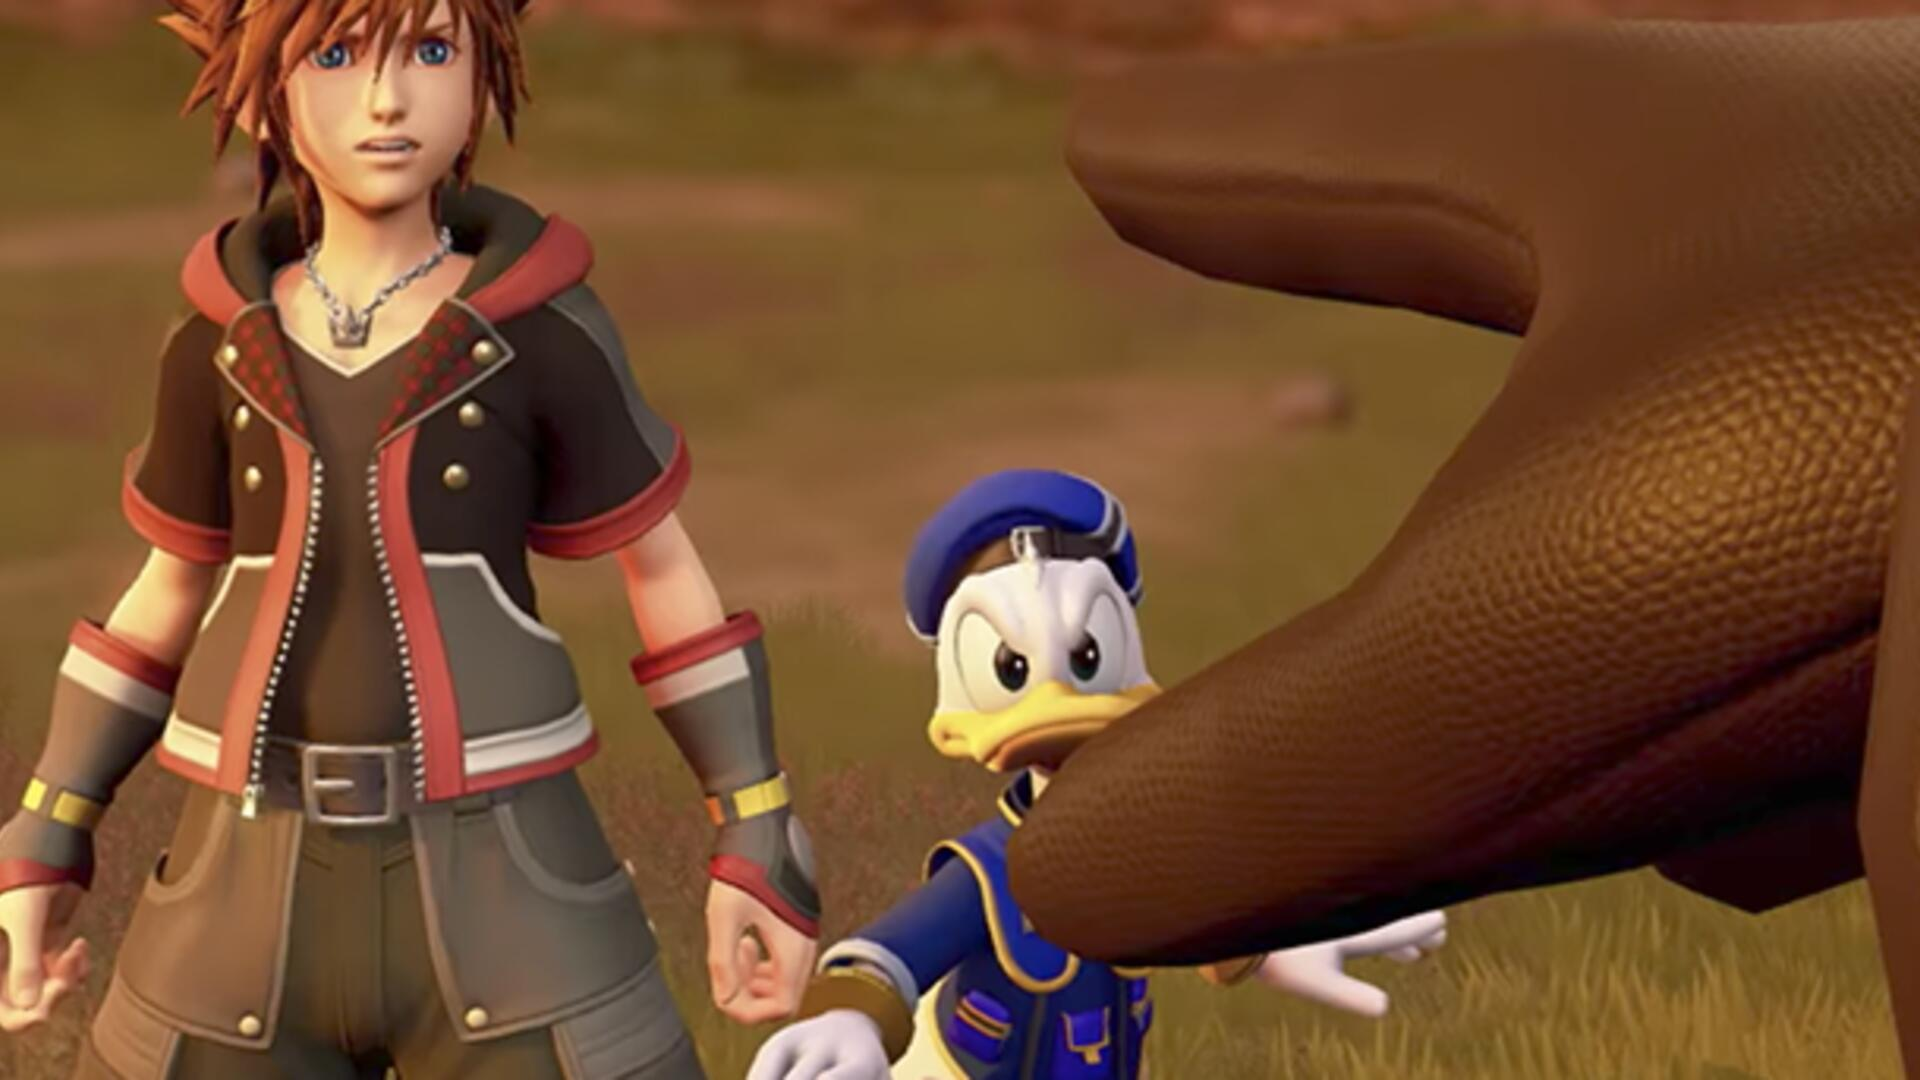 Gawrsh, There's a New Kingdom Hearts 3 Trailer out, and It Features a Hercules World